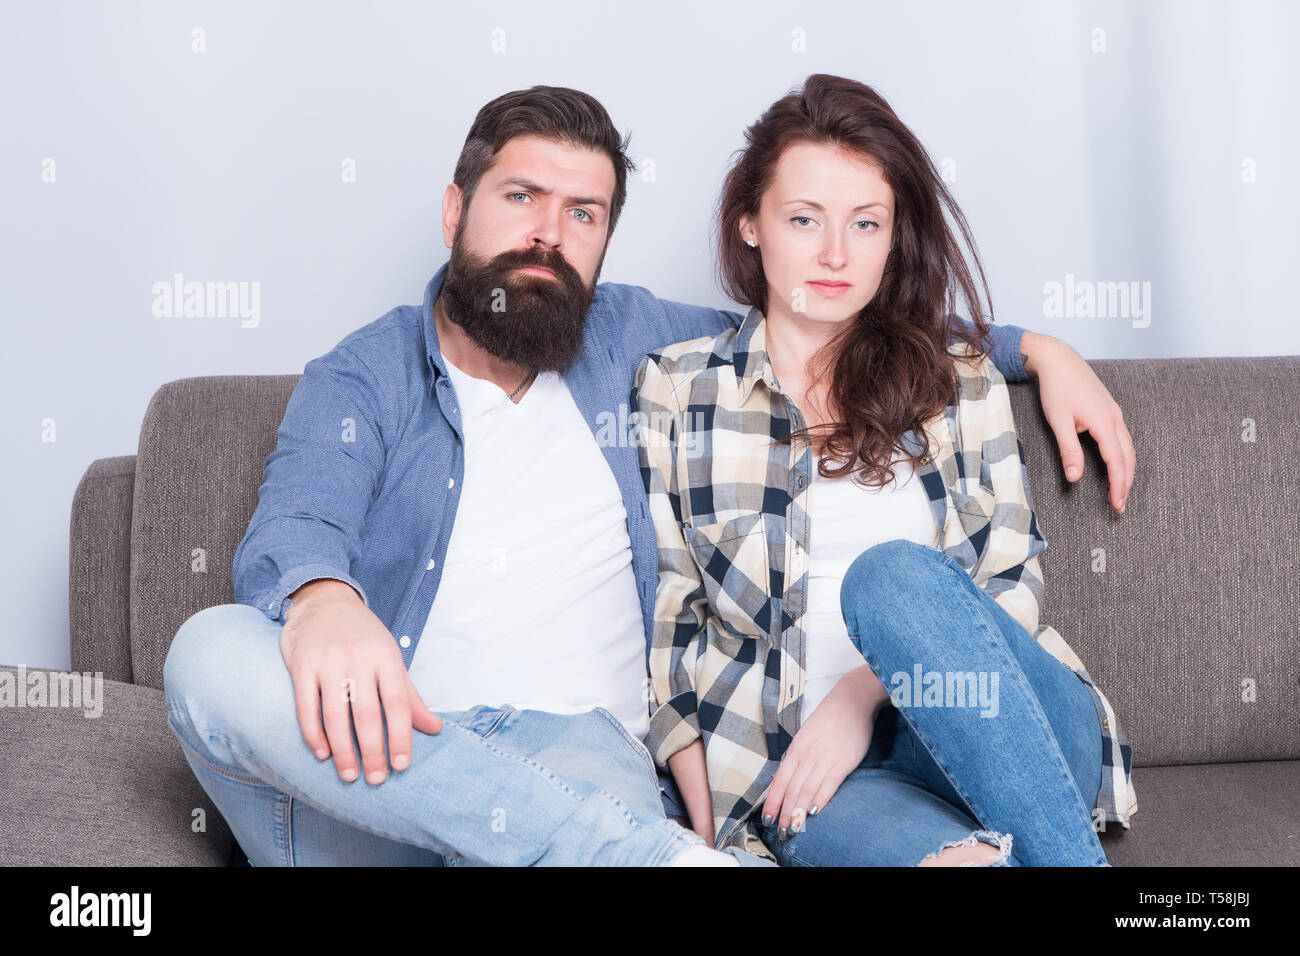 Regular couple relaxing on couch. Session at family psychotherapist. Couple in love hug looking at camera. Family relations. Family leisure. Happy and healthy relations. Bearded man and pretty girl. Stock Photo